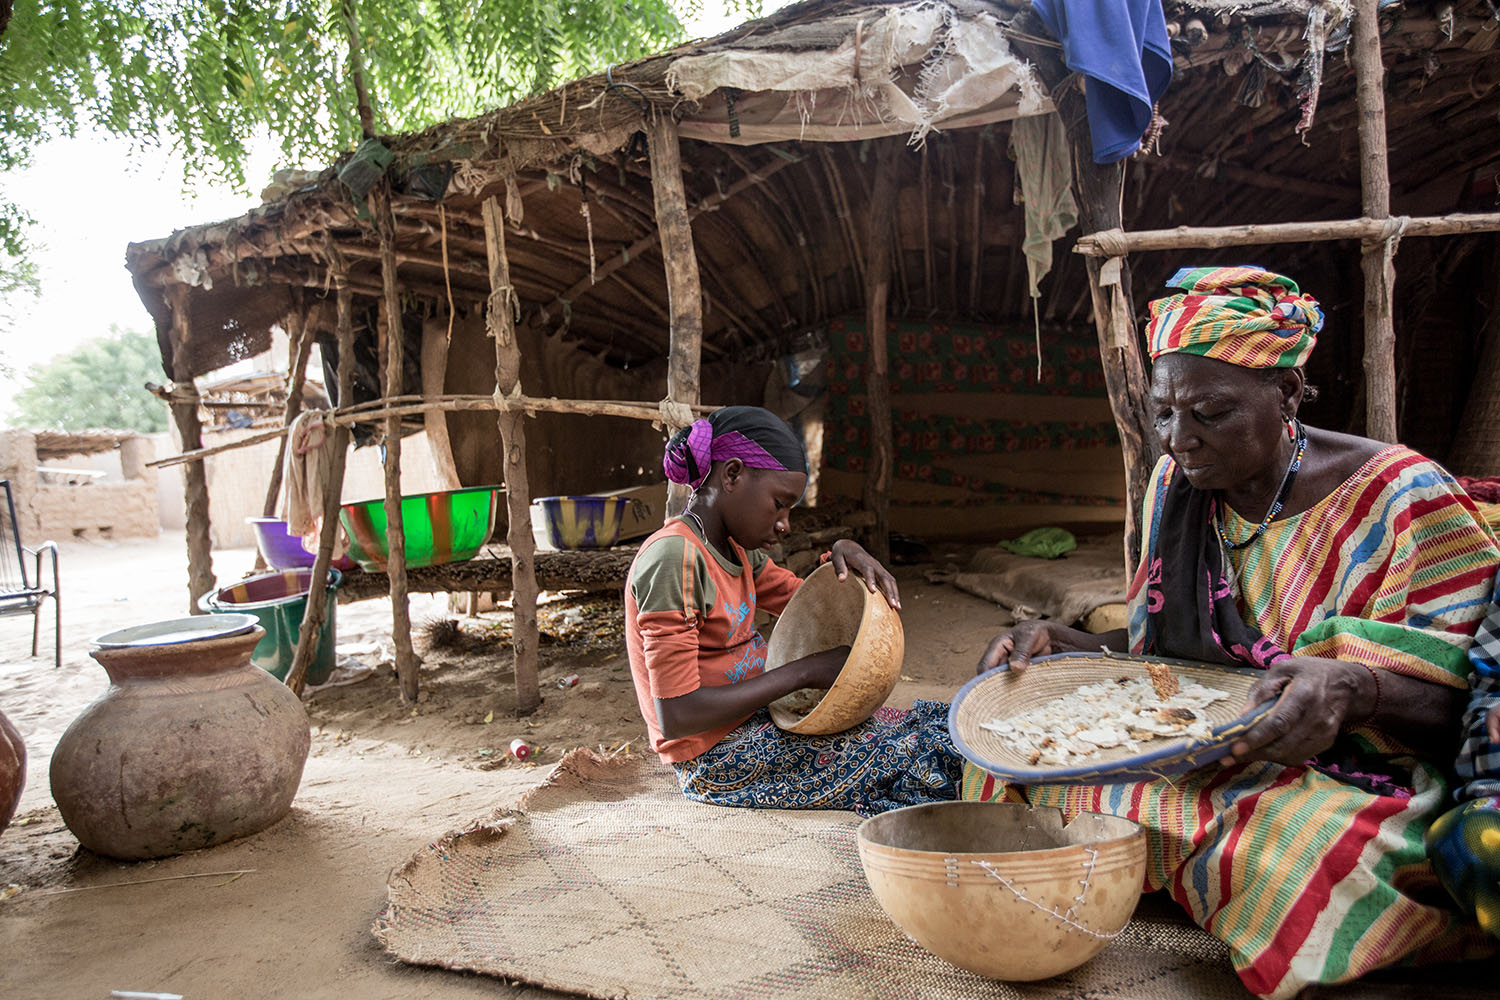 Adeoula, 12 years (RELEASED) and her grandmother prepare a meal together in their homestead, Gao Northern Mali. Adeoula and her brother were orphaned during the conflict and live with their grandmother Hadish. Ongoing conflicts in the northern regions of